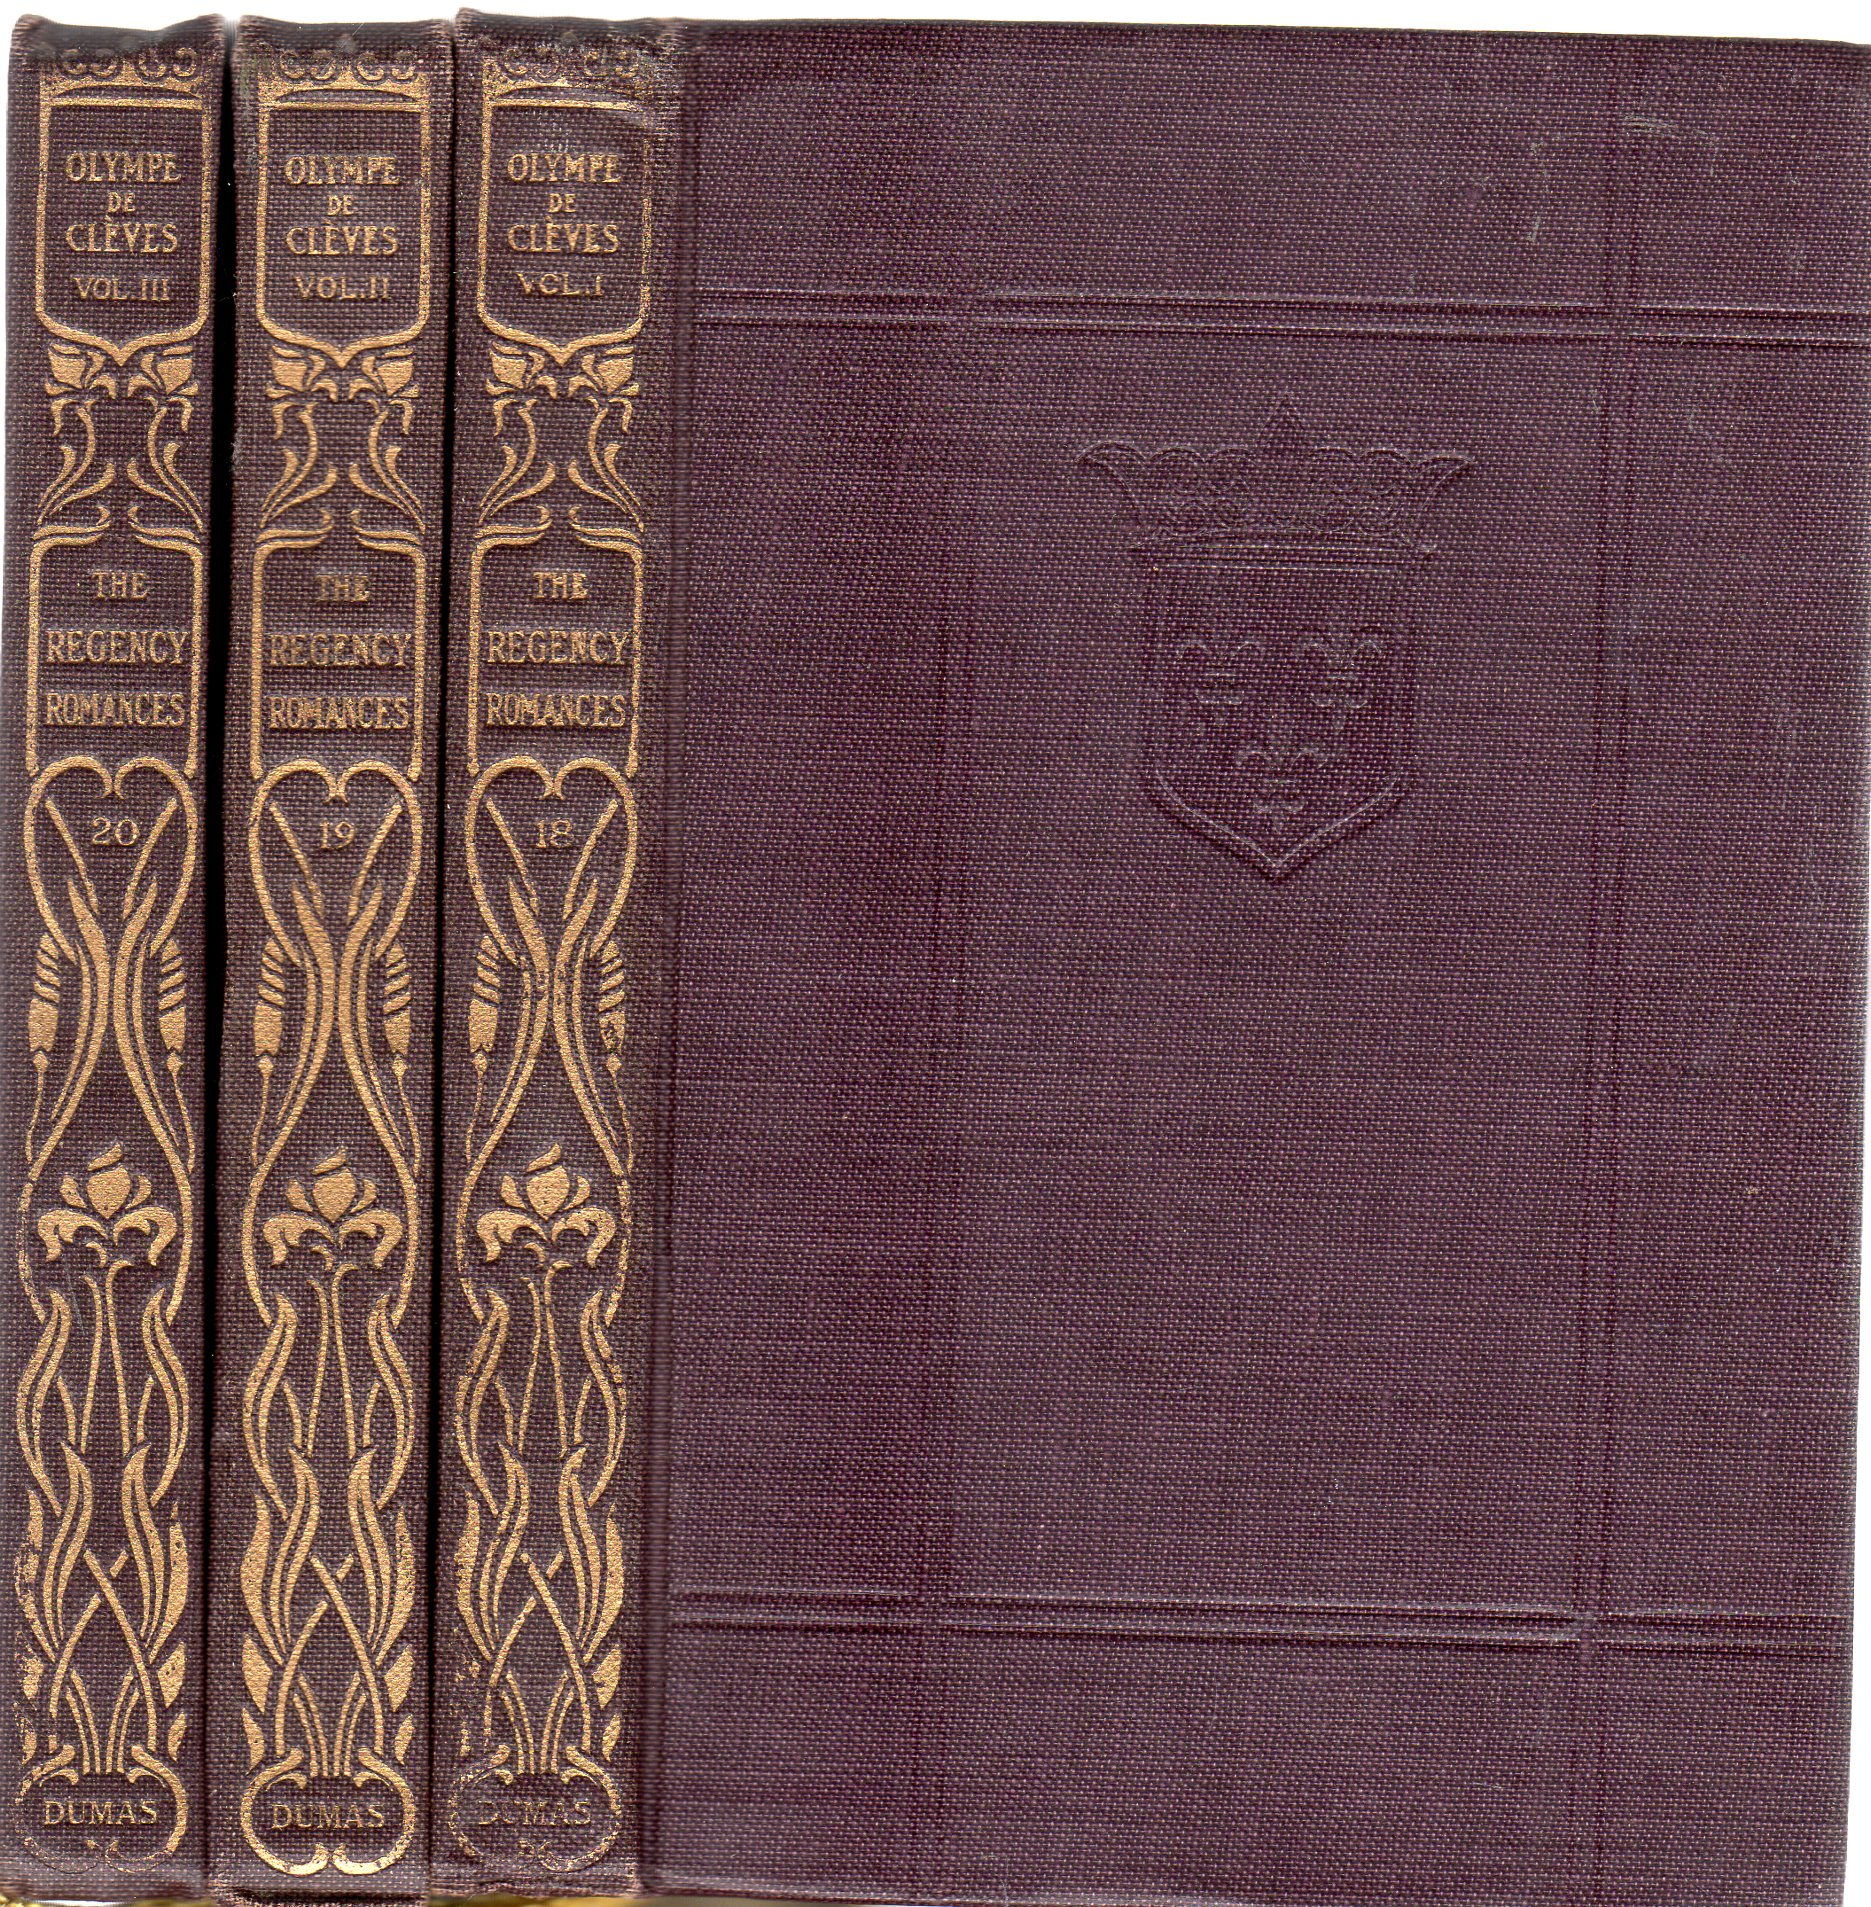 Image for Olympe De Cleves (3 volumes) The Romances of Alexandre Dumas No 18, 19, 20